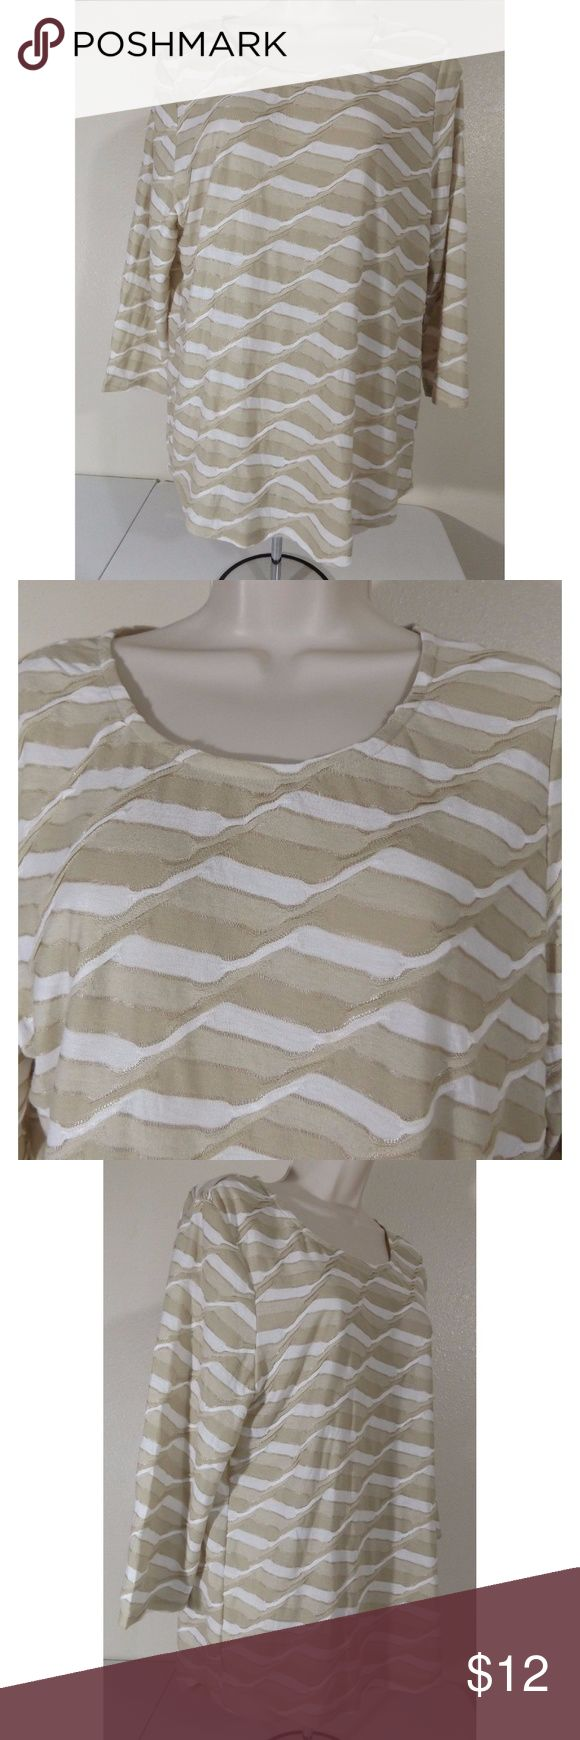 """CHICO'S Striped Pinch Pleated Top 3/4 sleeve lightweight and stretchy all-over pinch pleated design striped pattern in neutral colors  61% Polyester, 39% Rayon Tag as Size 1 which is equivalent to Women's Size 8 or Medium  Excellent used condition. No rips holes or stains.  Approximate measurements (taken laid flat): Armpit to armpit: 20.5"""" Sleeve (shoulder seam to edge of sleeve): 18"""" or pit to edge of sleeve: 12"""" Length (shoulder to hem): 26"""" Chico's Tops Tees - Short Sleeve"""